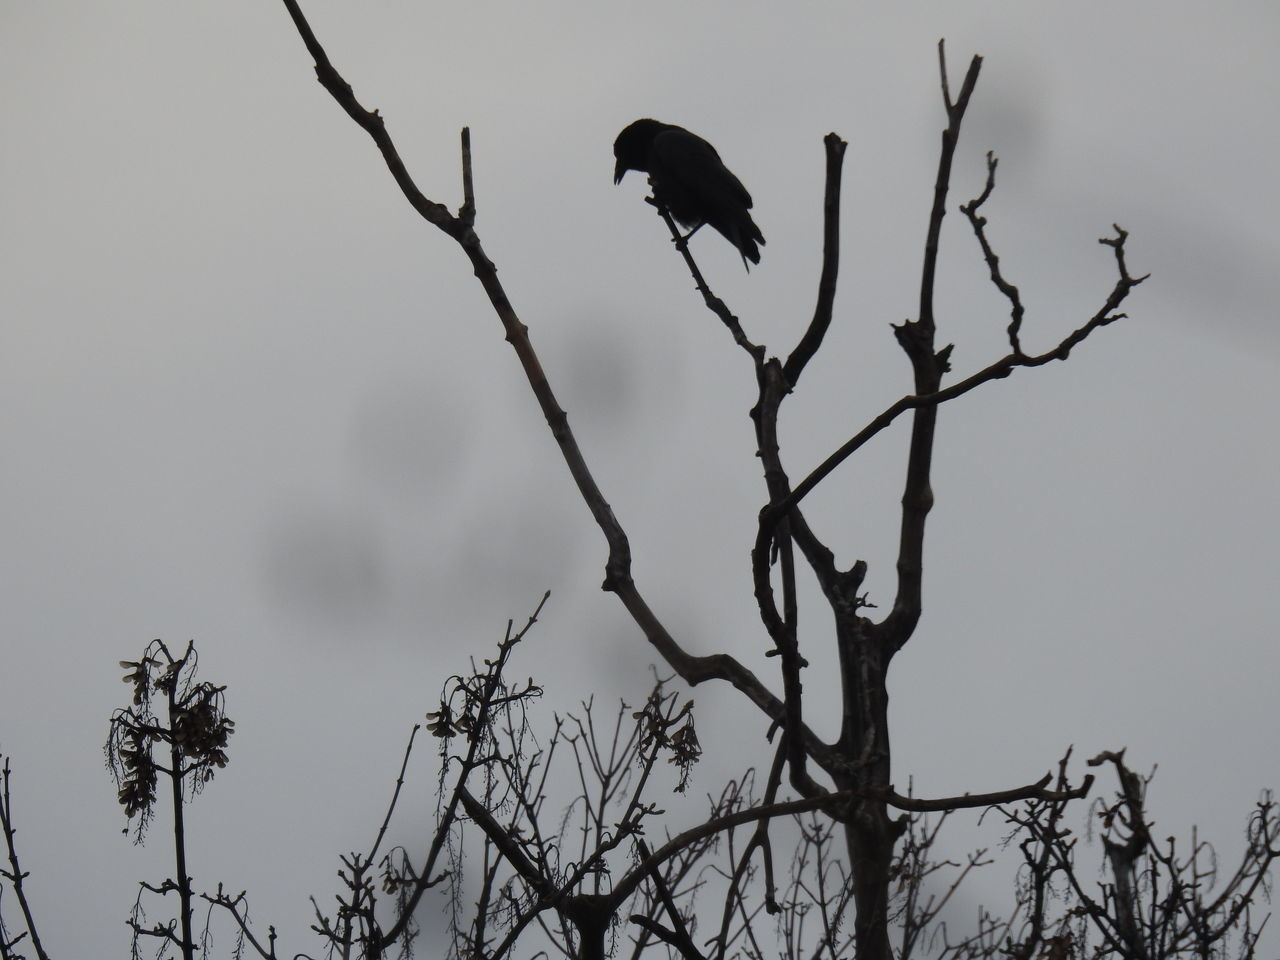 Lonely Crow Tree Branch Nature Bare Tree Bird Silhouette Tree Trunk No People Outdoors Living Organism Beauty In Nature Sky Day Graysky Gray Skies Crow Crows One Animal One Bird Silhouettes Silhouette Photography Crow Silhouette Bird Photography Dreary Weather  Spooky Atmosphere